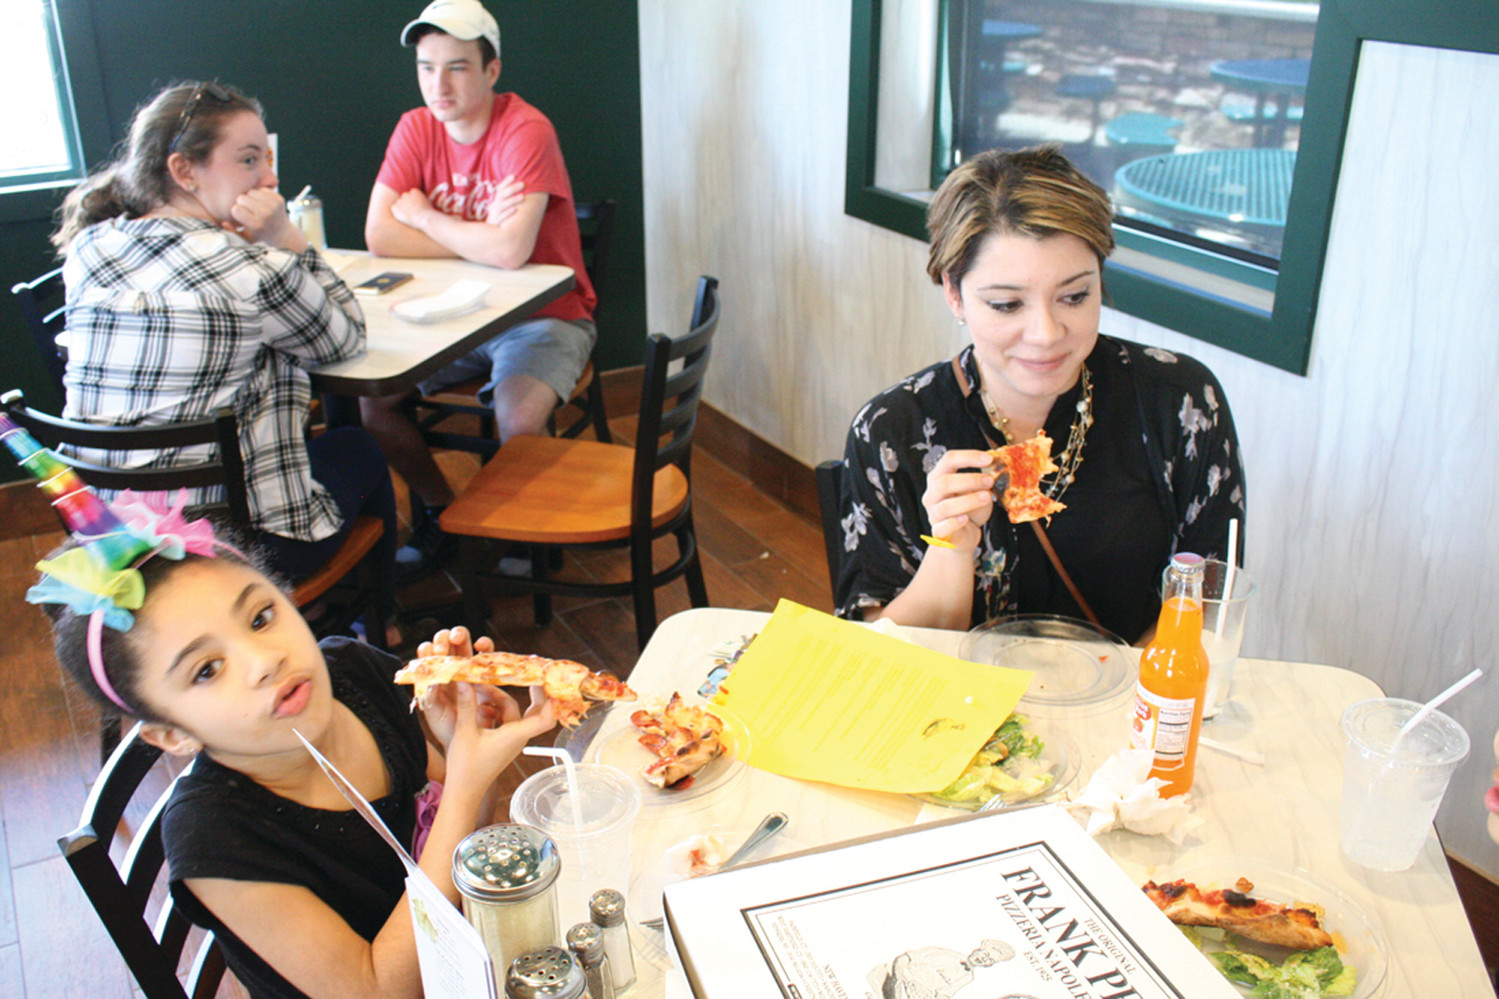 PIZZA OVER SCHOOL: Jennifer Valley brought her daughter, Lyric De Jesus, and son, Jonathan De Jesus, to the free pizza day Friday afternoon at Frank Pepe's, saying it was tough to pass up the tasty deal. The family lives in Warwick.